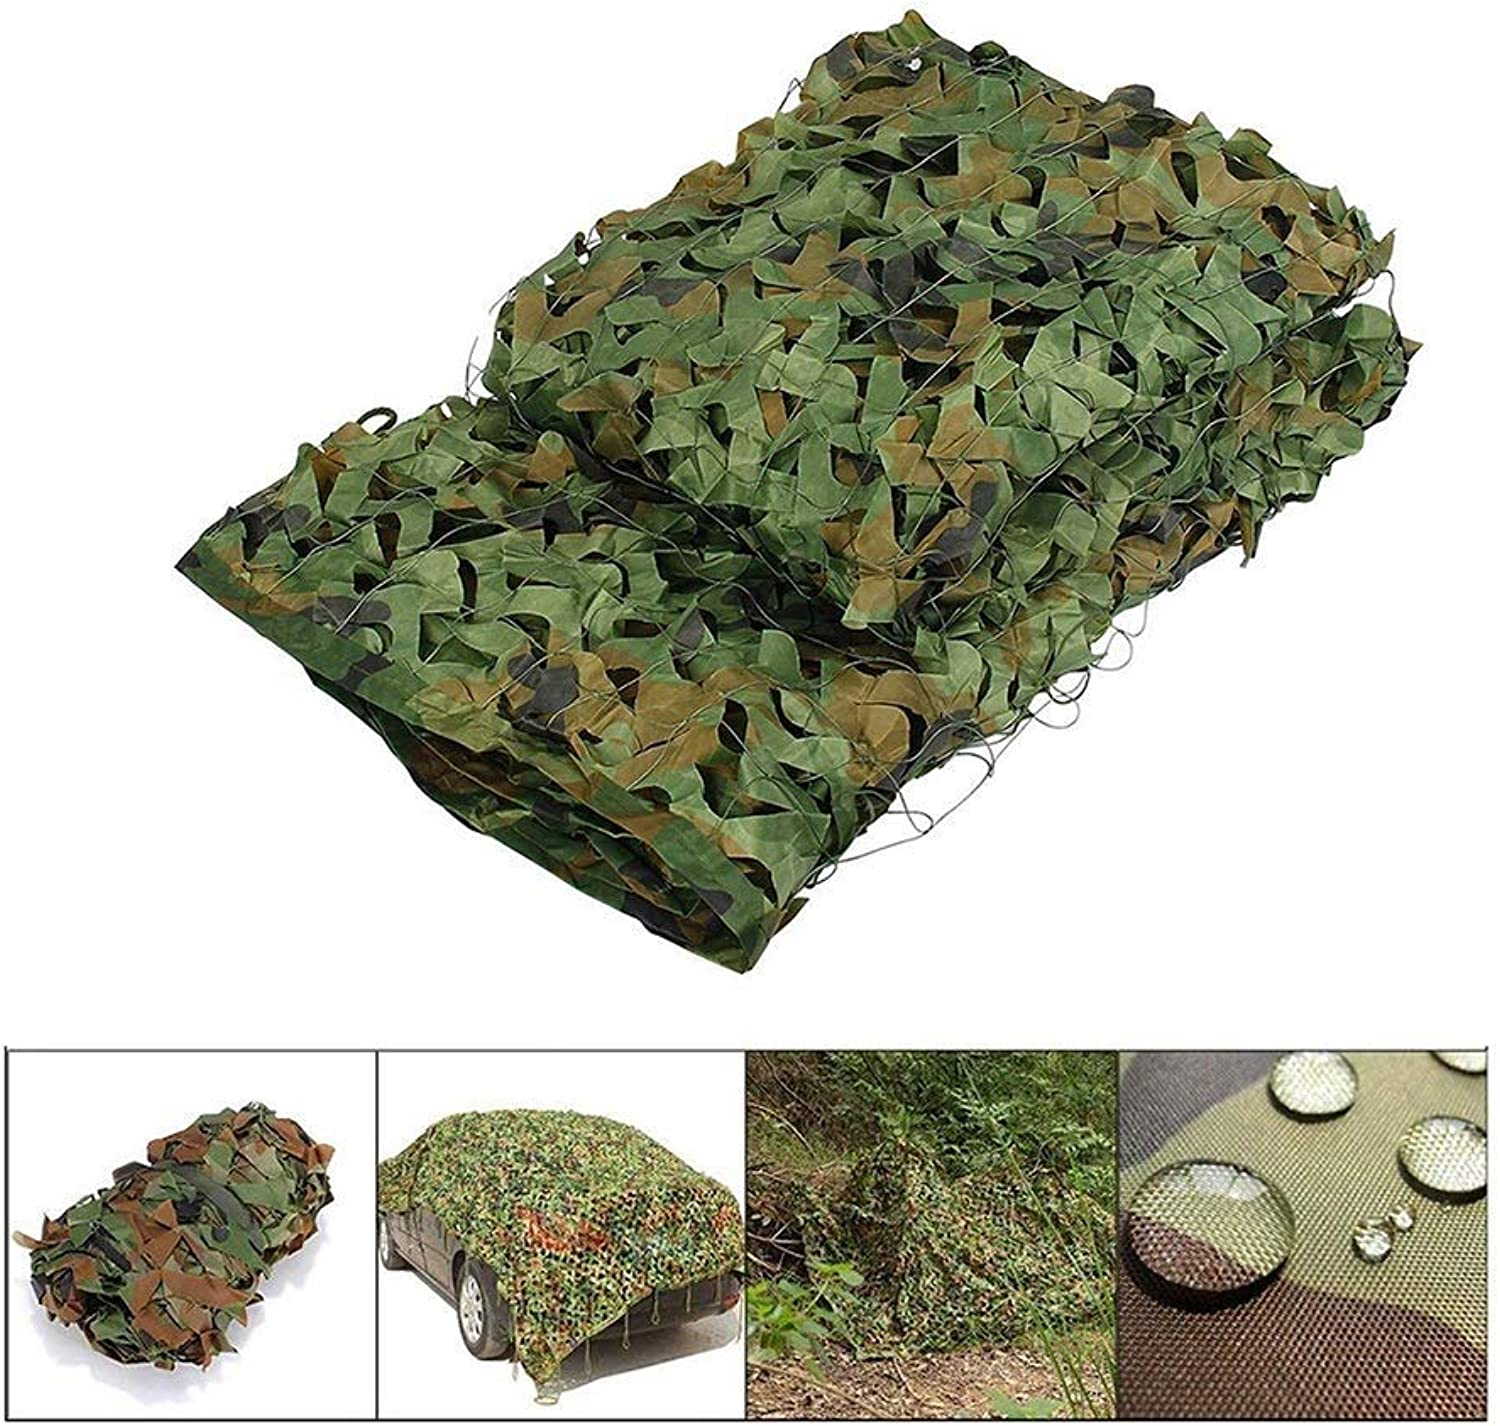 e4a27d565f Camouflage net Camouflage Net, Camouflage Net Cover Net for Outdoor Wedding  Party Hunting Military Vehicle Awning (MultiSize Optional) Camping Shade ...